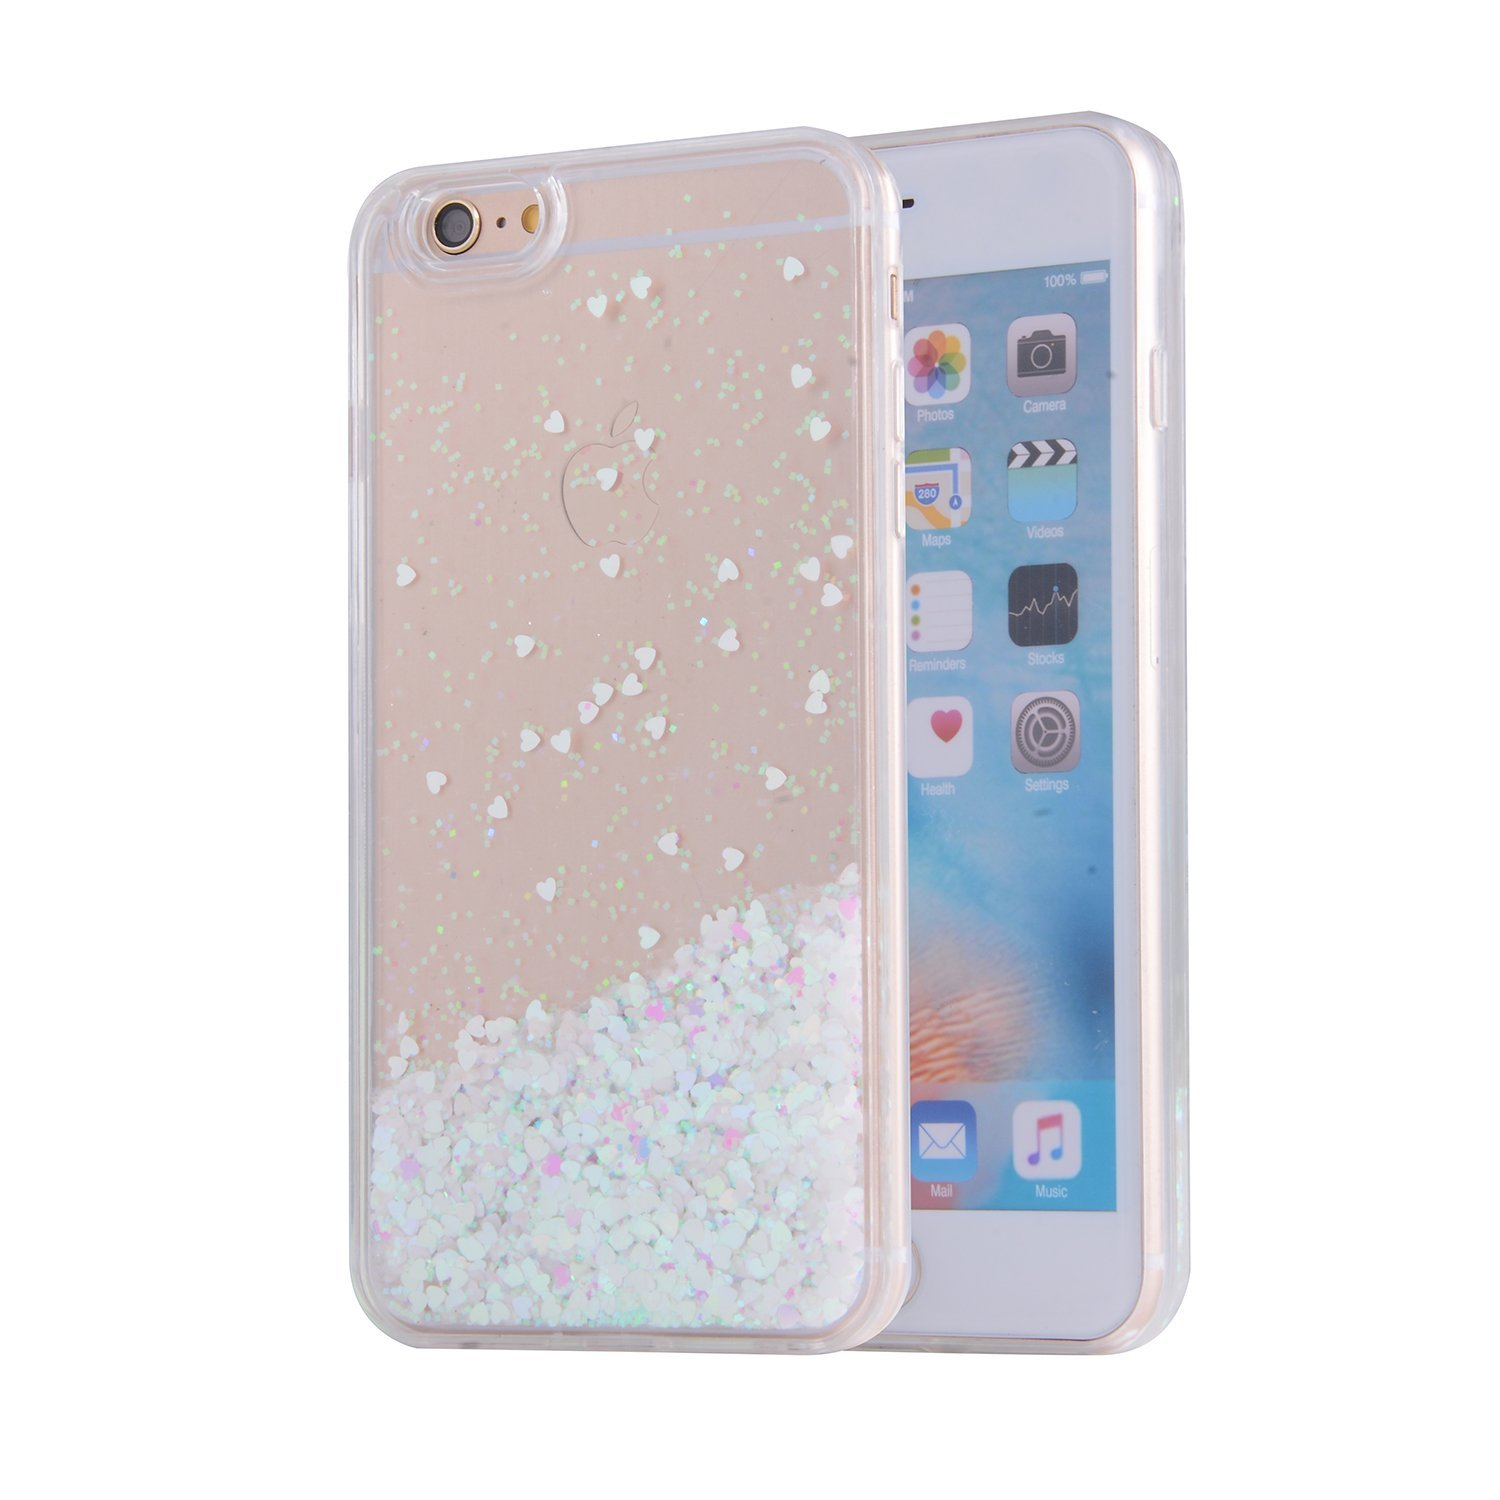 iPhone 6S Case, SAUS iPhone 6 Case, Funny Liquid Infused with Floating Bling Glitter Sparkle Dynamic Flowing Hybrid Bumper Case for iPhone 6/6S (White)